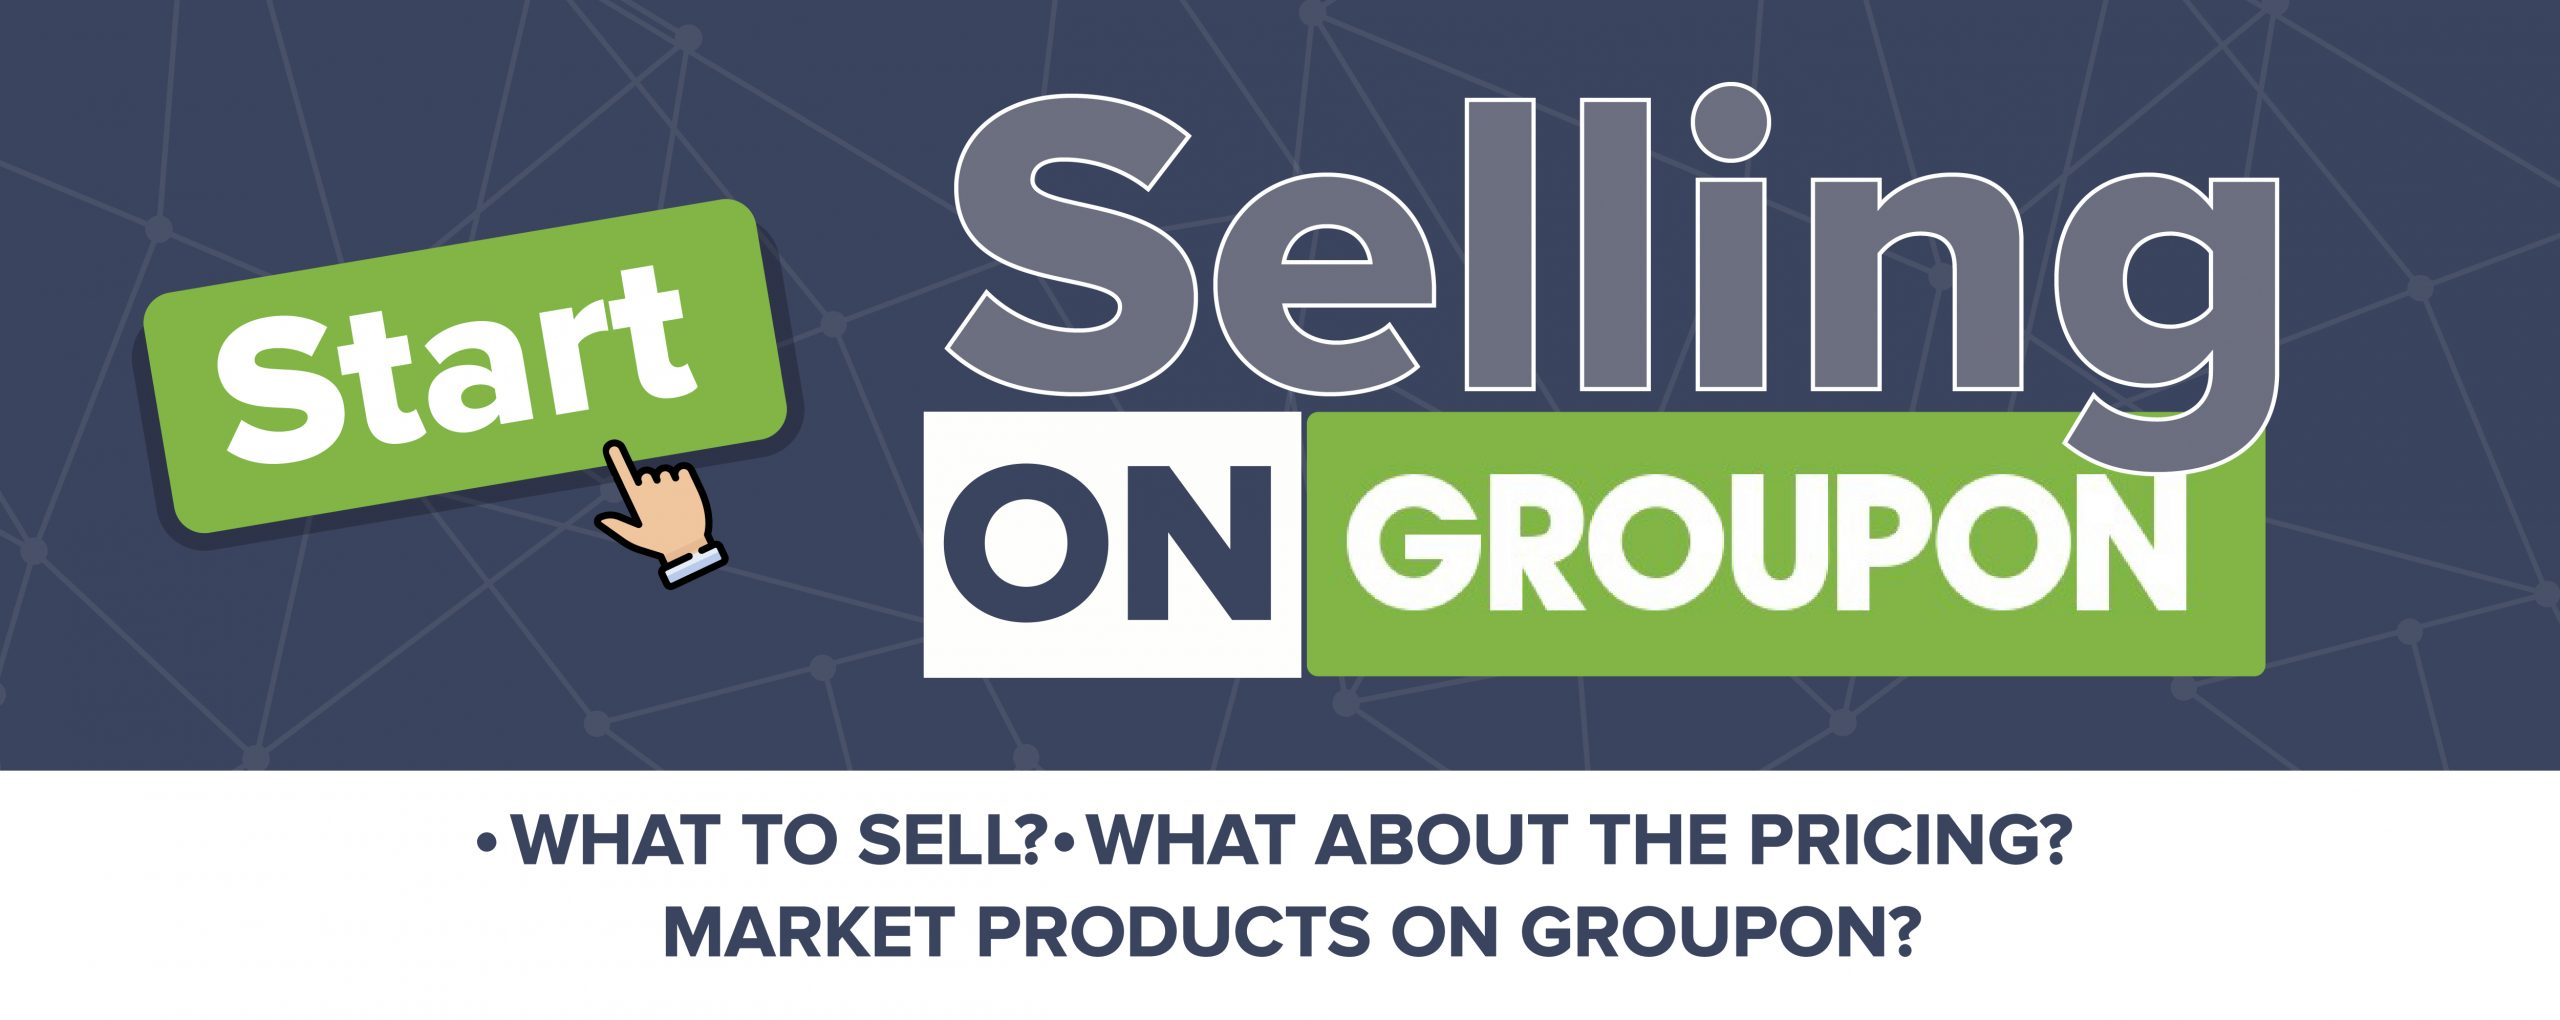 Start Selling On Groupon, We Share The Tip!